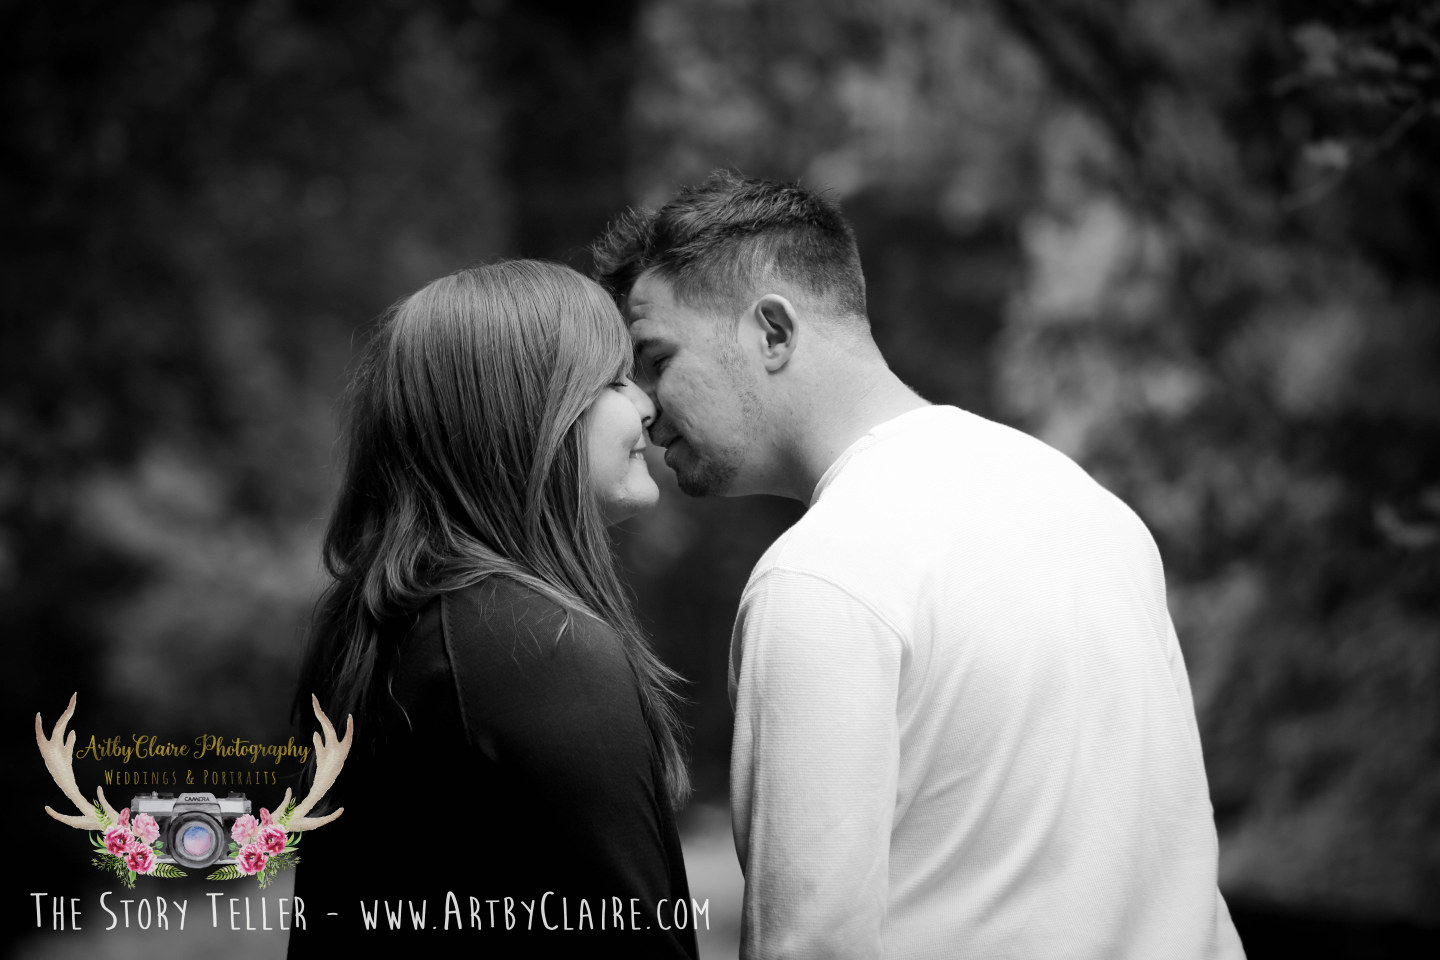 Ashridge Engagement Shoot by ArtbyClaire Wedding Photography